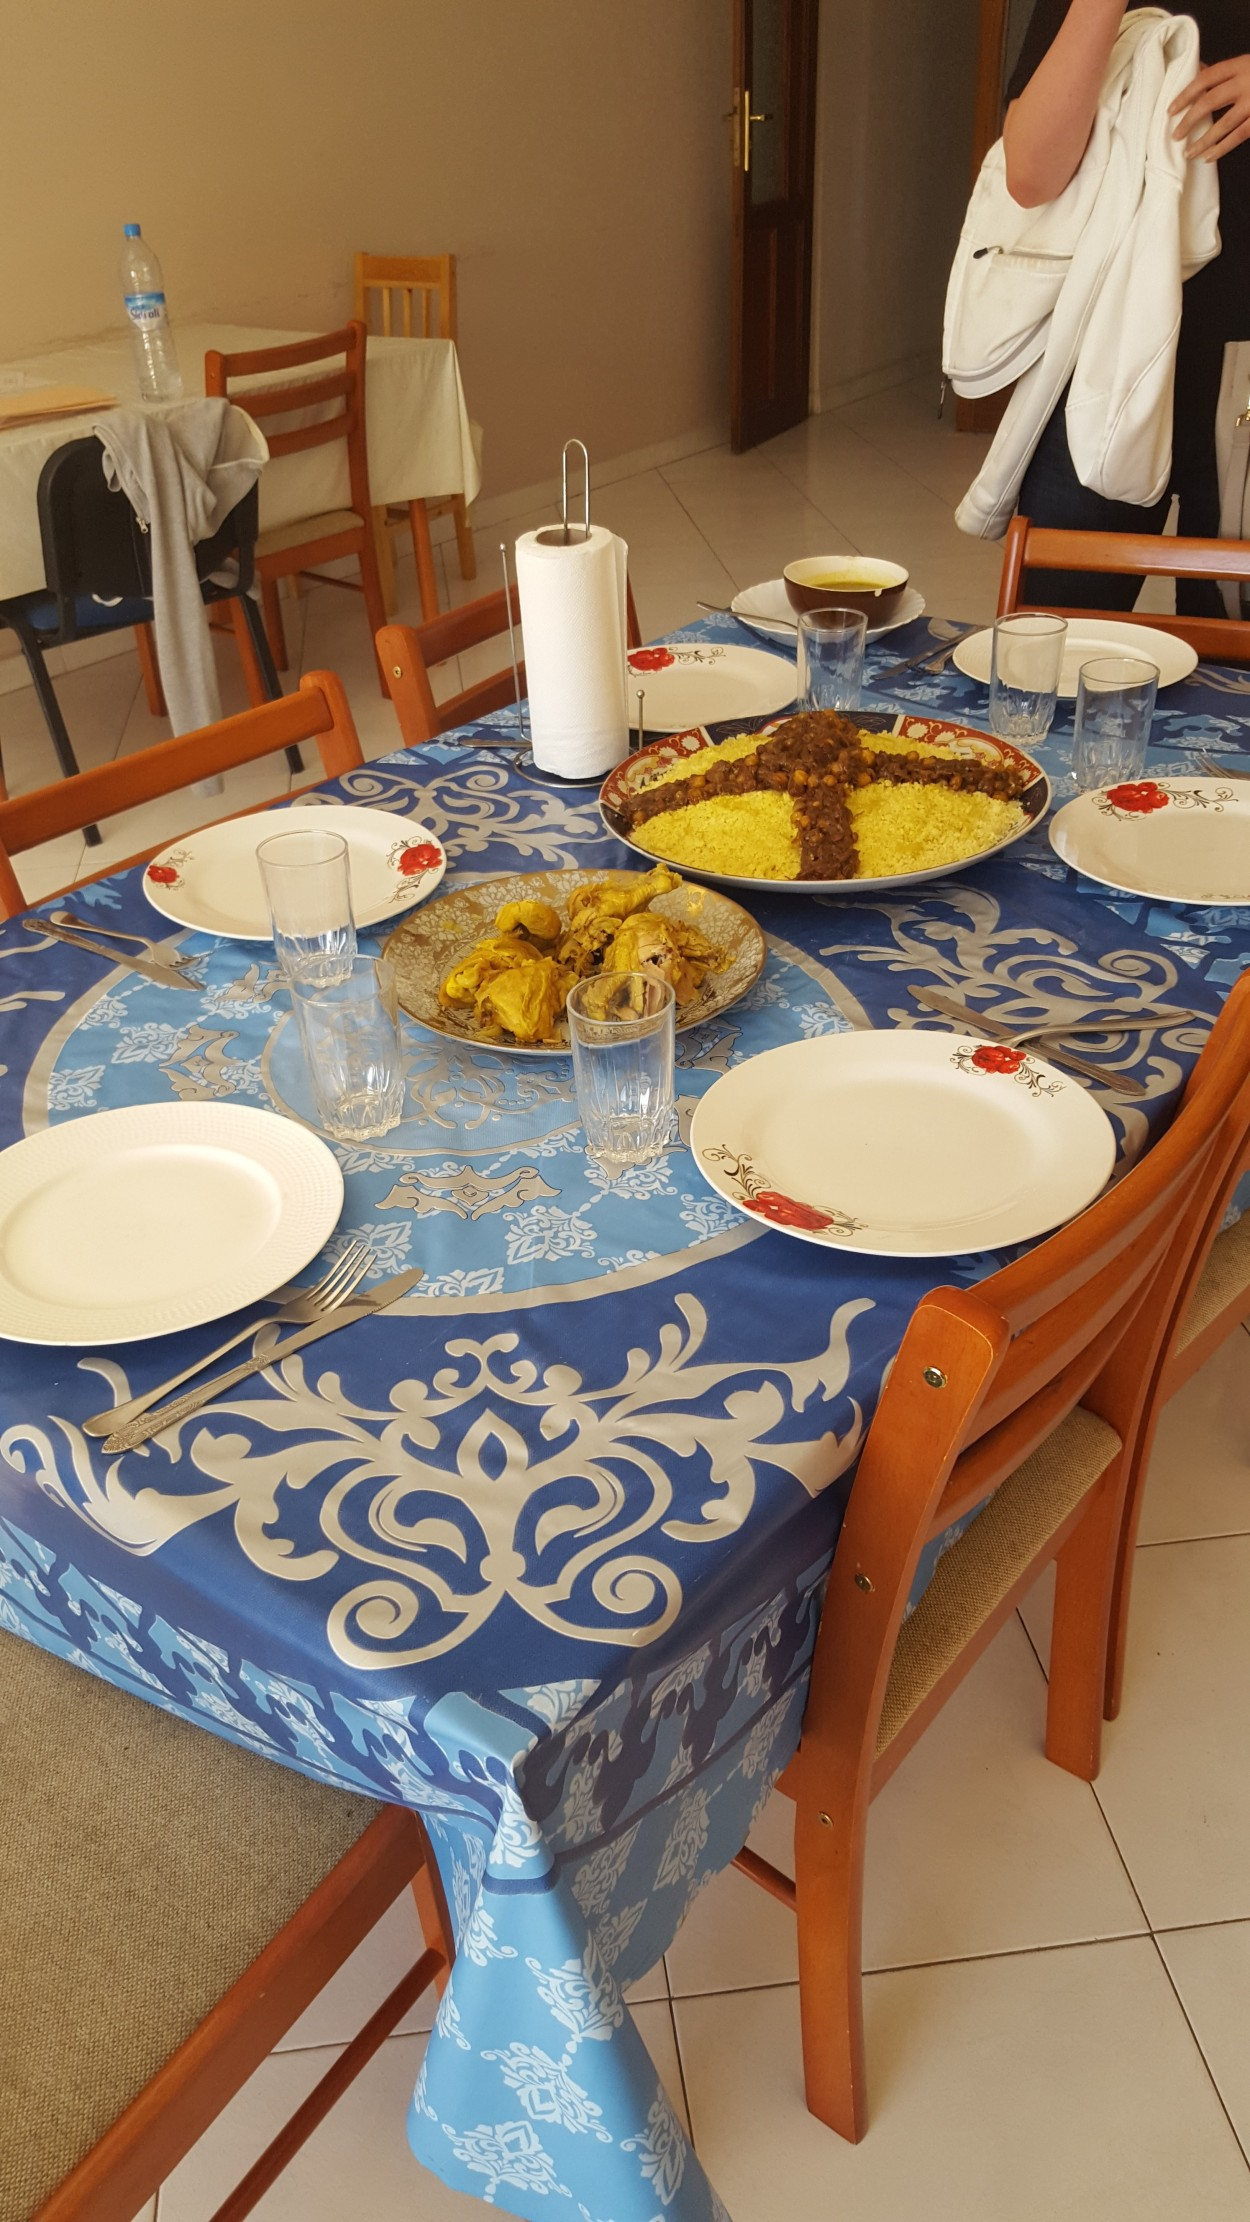 A delicious Moroccan meal